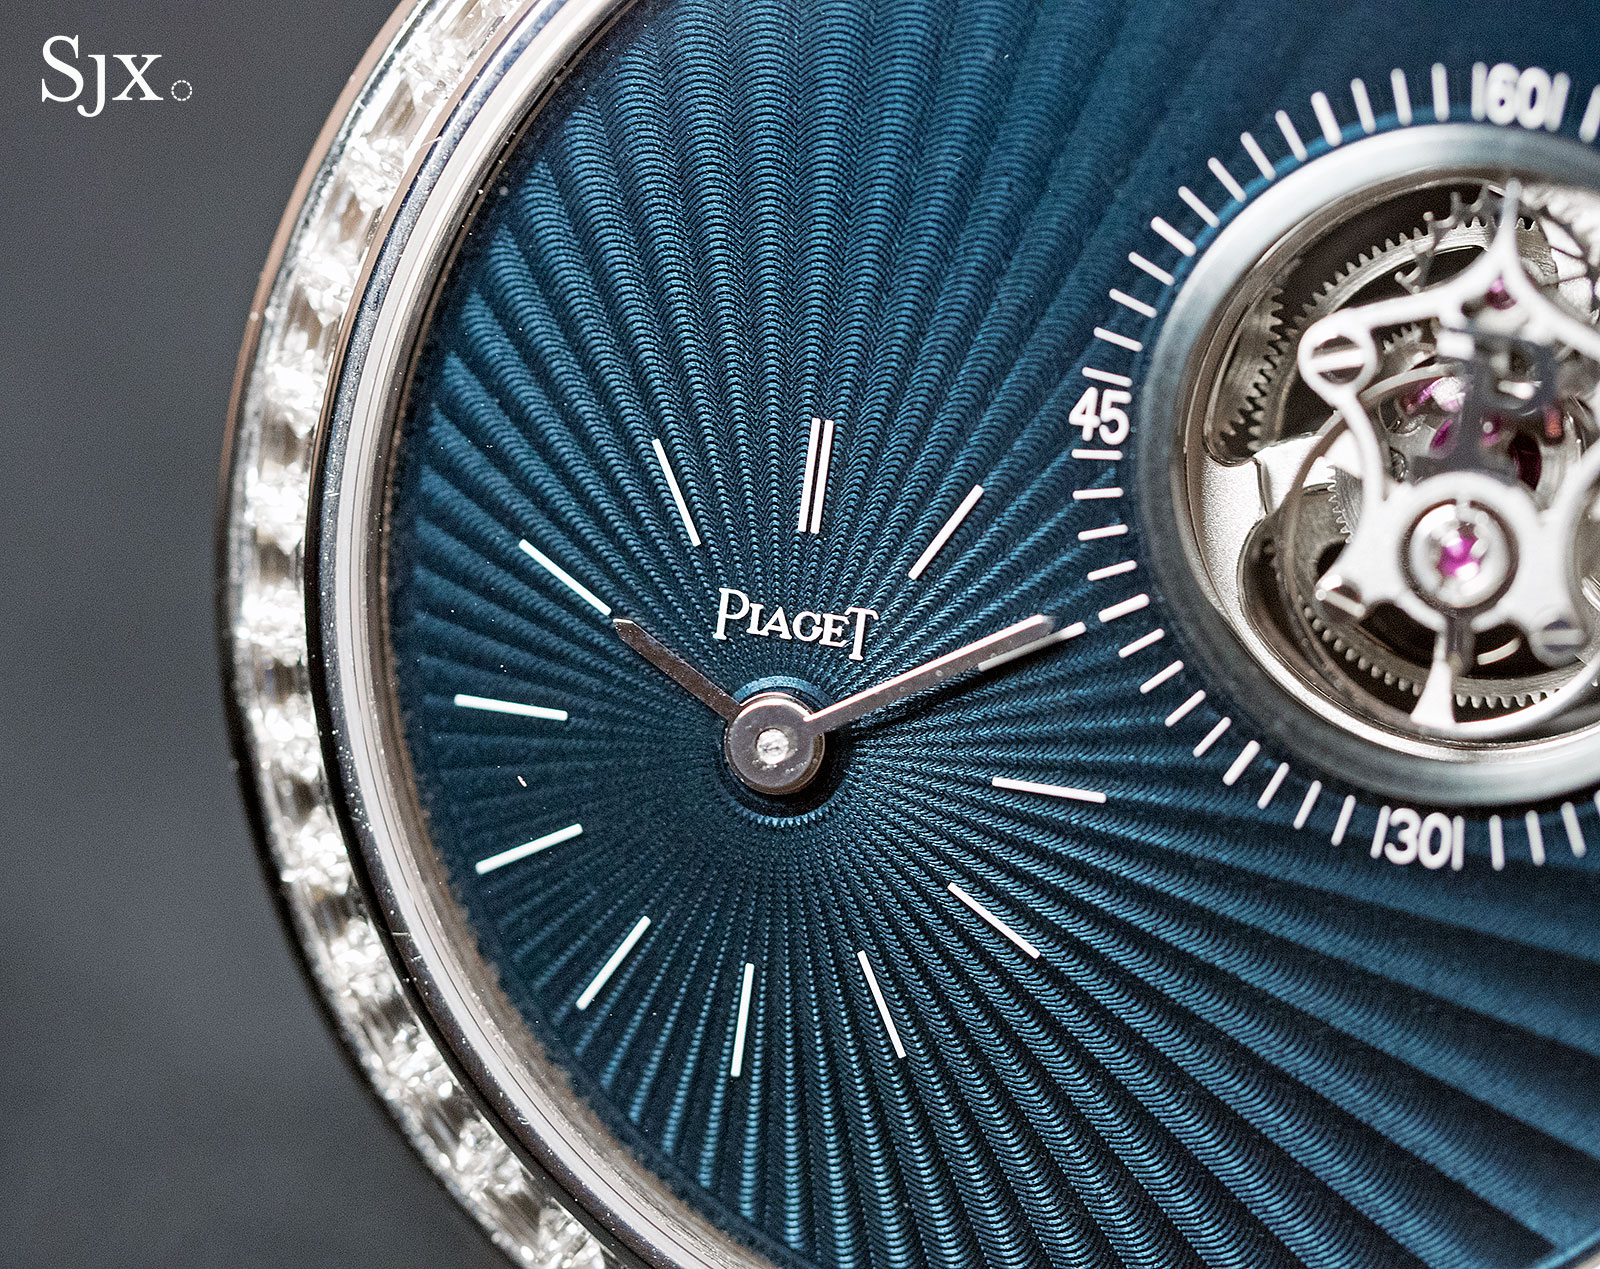 Piaget Altiplano 60th Anniversary Tourbillon High Jewellery 3